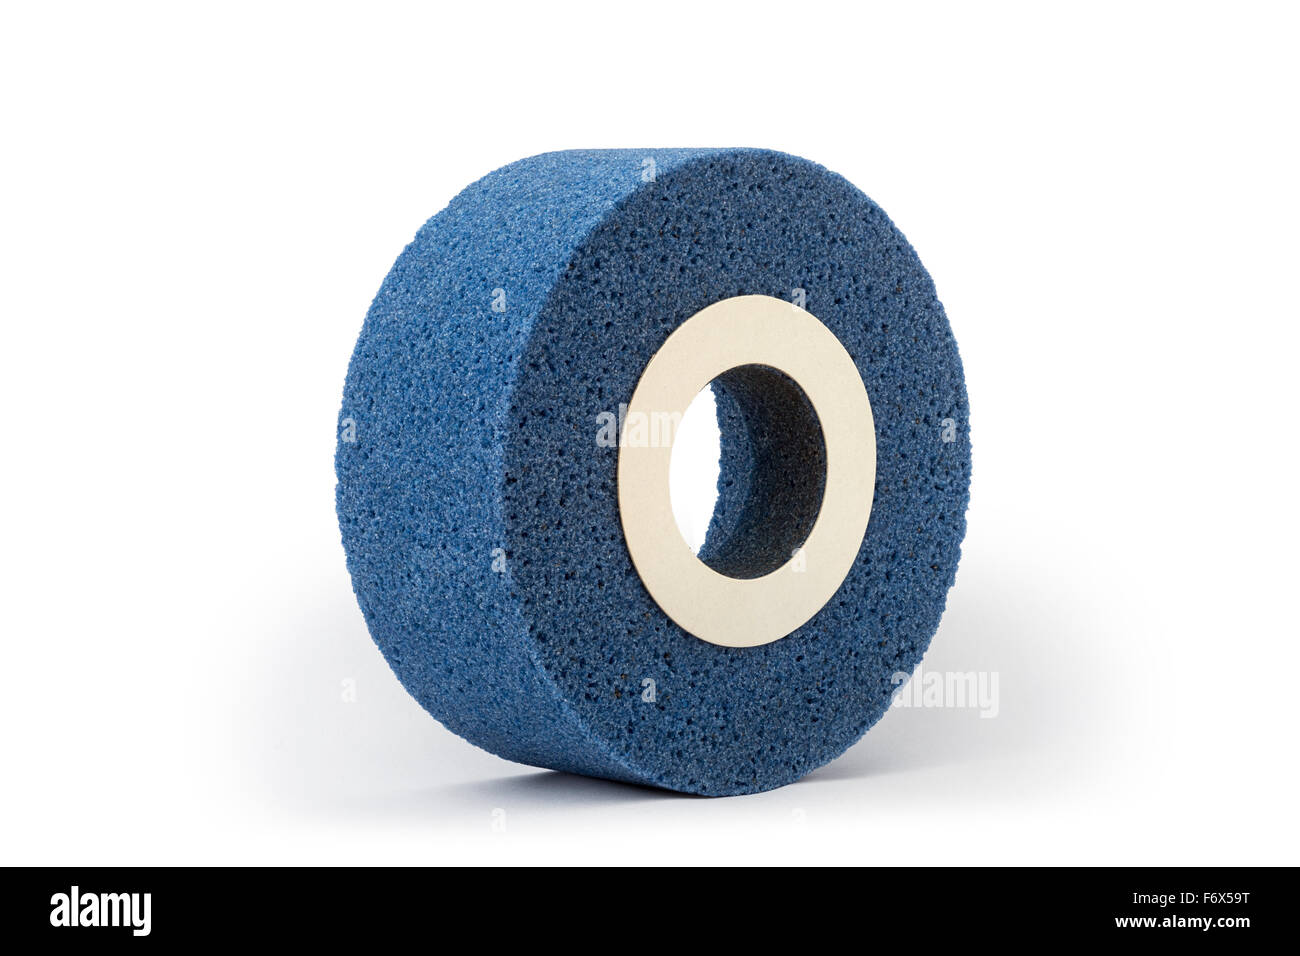 A blue abrasive wheel made out of corundum for a grinder, photographed in the studio on a white background. Grinding - Stock Image